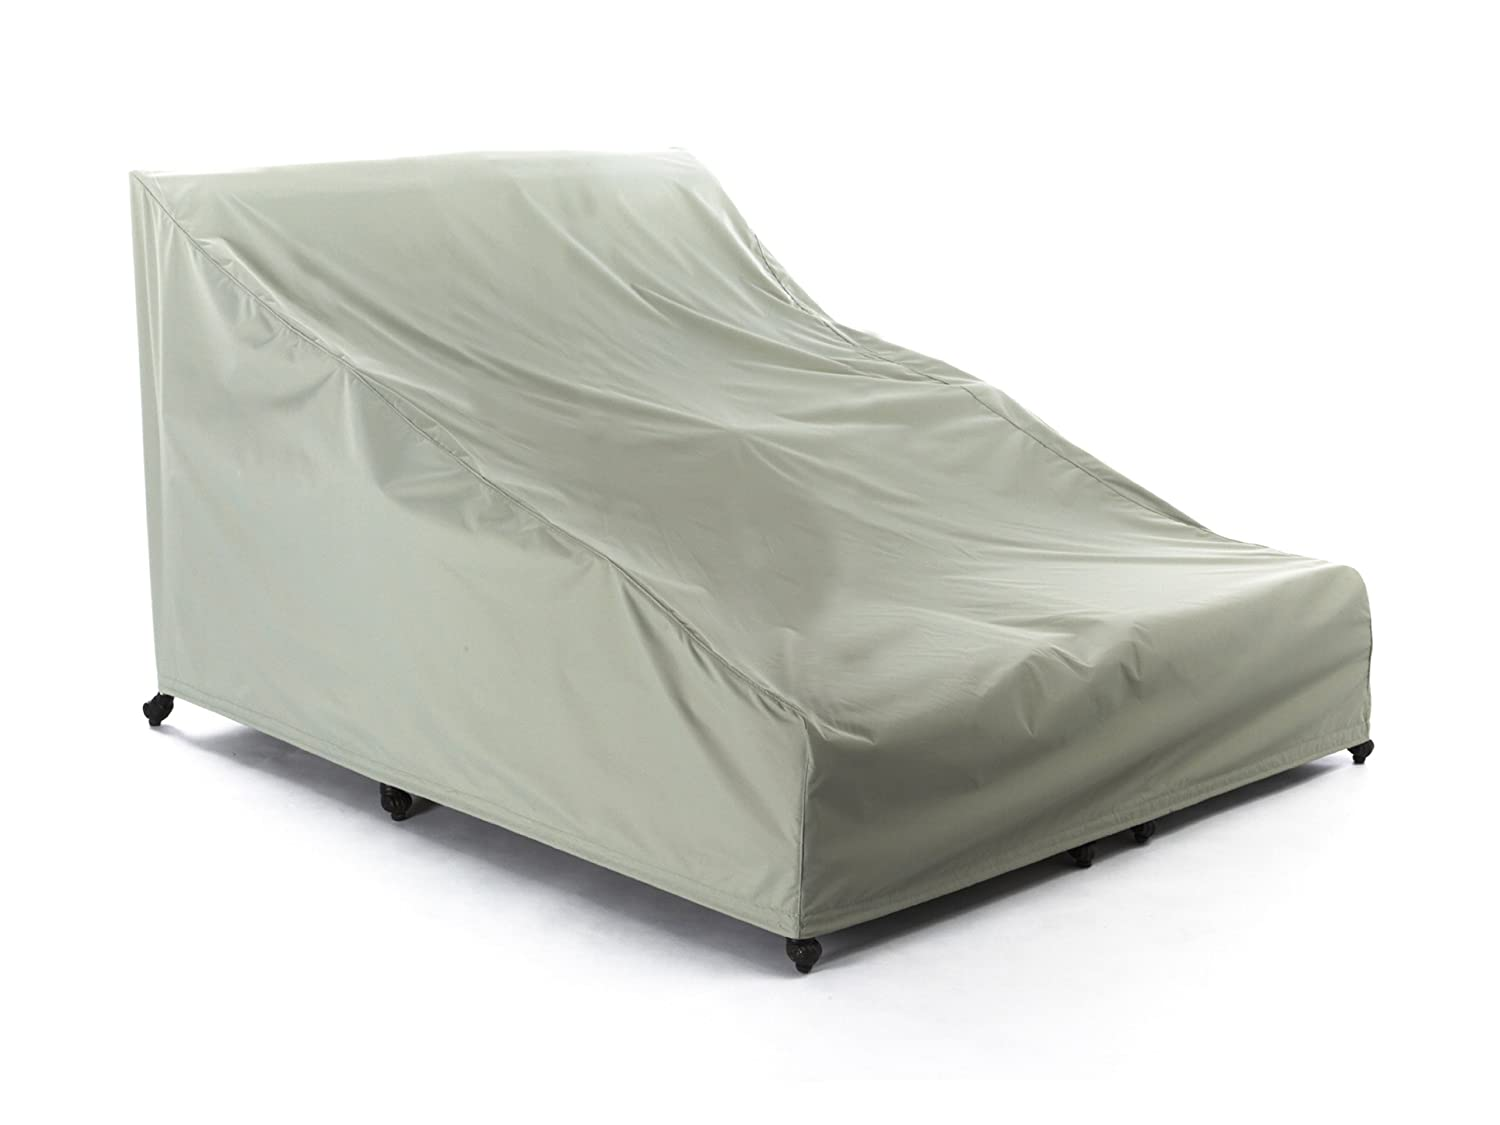 Double Chaise Lounge Covers 80 X 60 X 34 Sage Green Amazon Ca